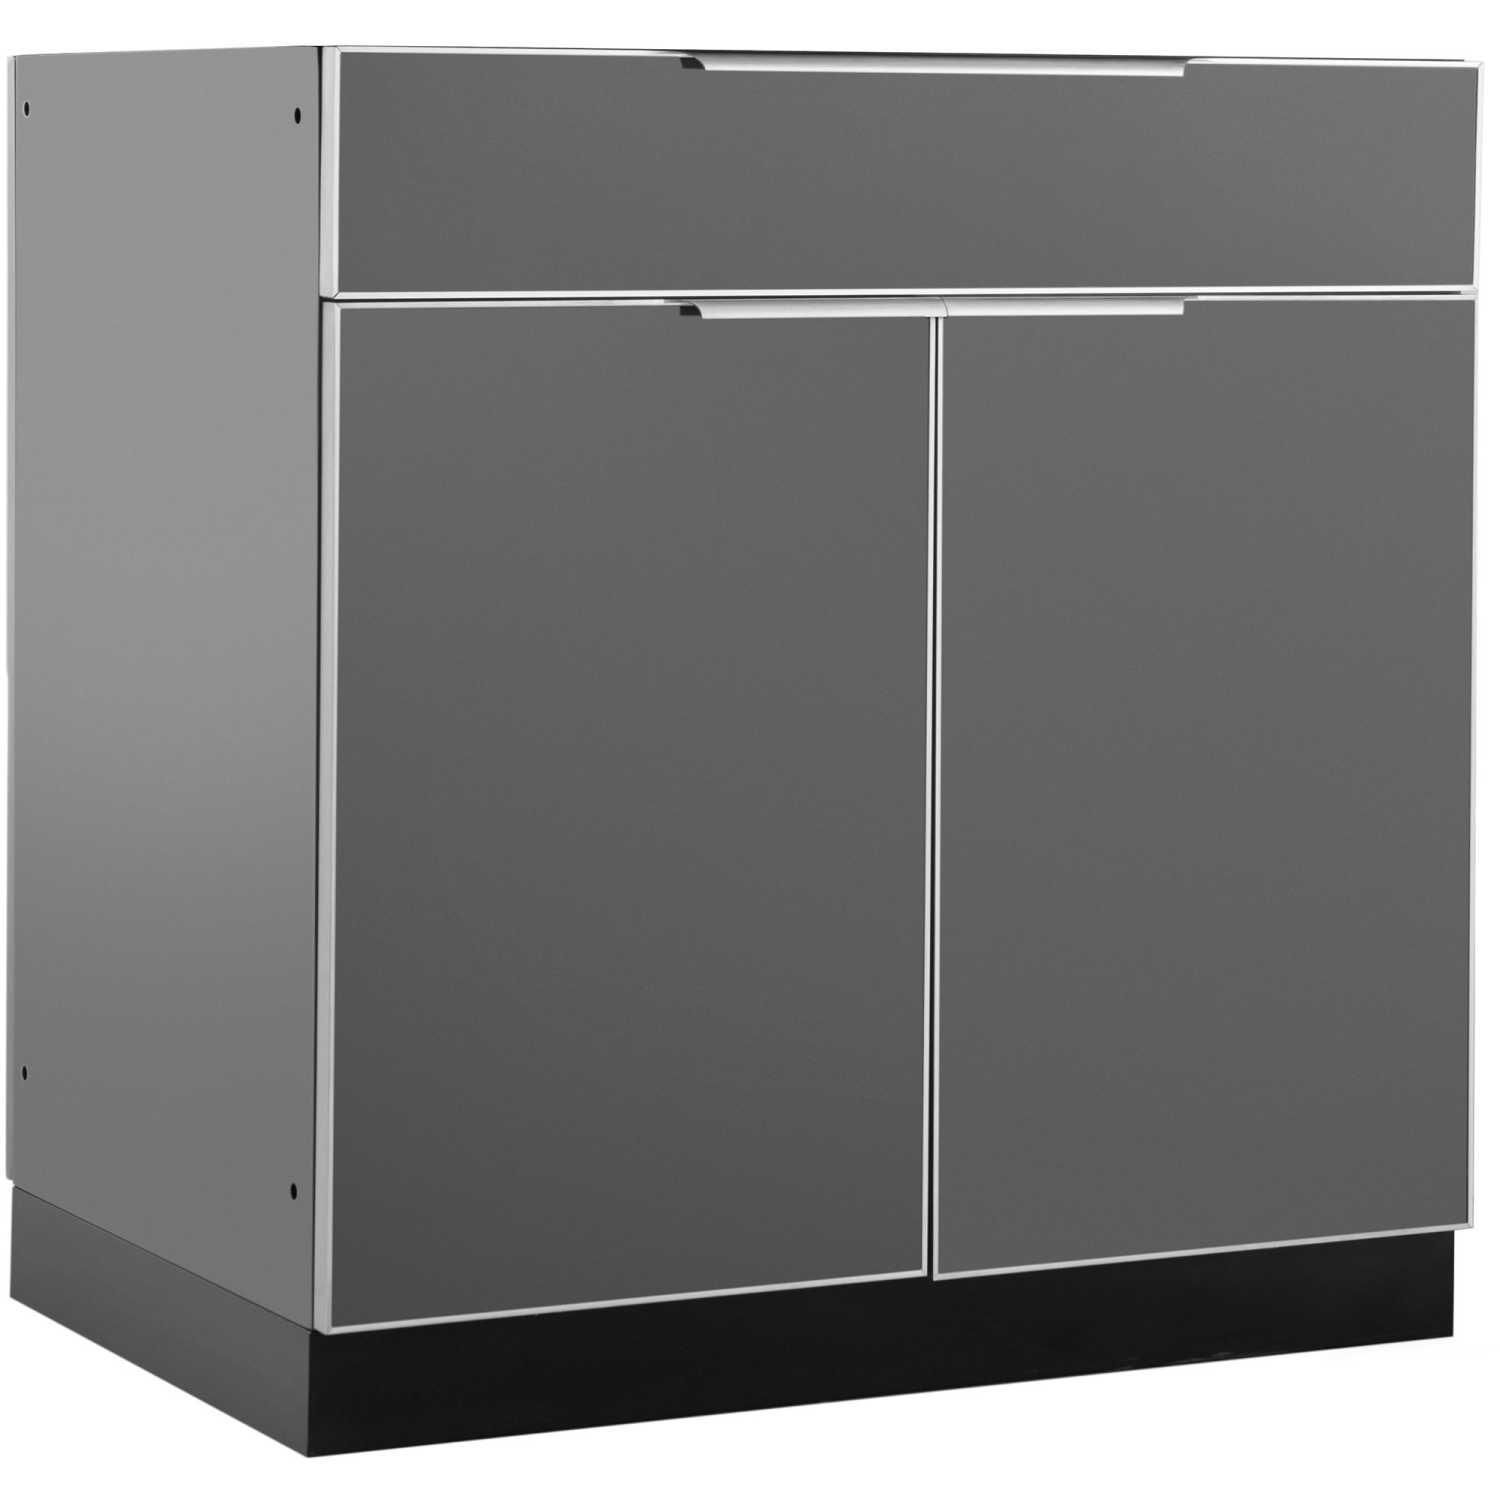 Newage Outdoor Kitchen Slate Gray Aluminum 32 Inch Bar Cabinet 65203 Bbqguys Outdoor Kitchen Cabinets Modular Outdoor Kitchens Newage Products